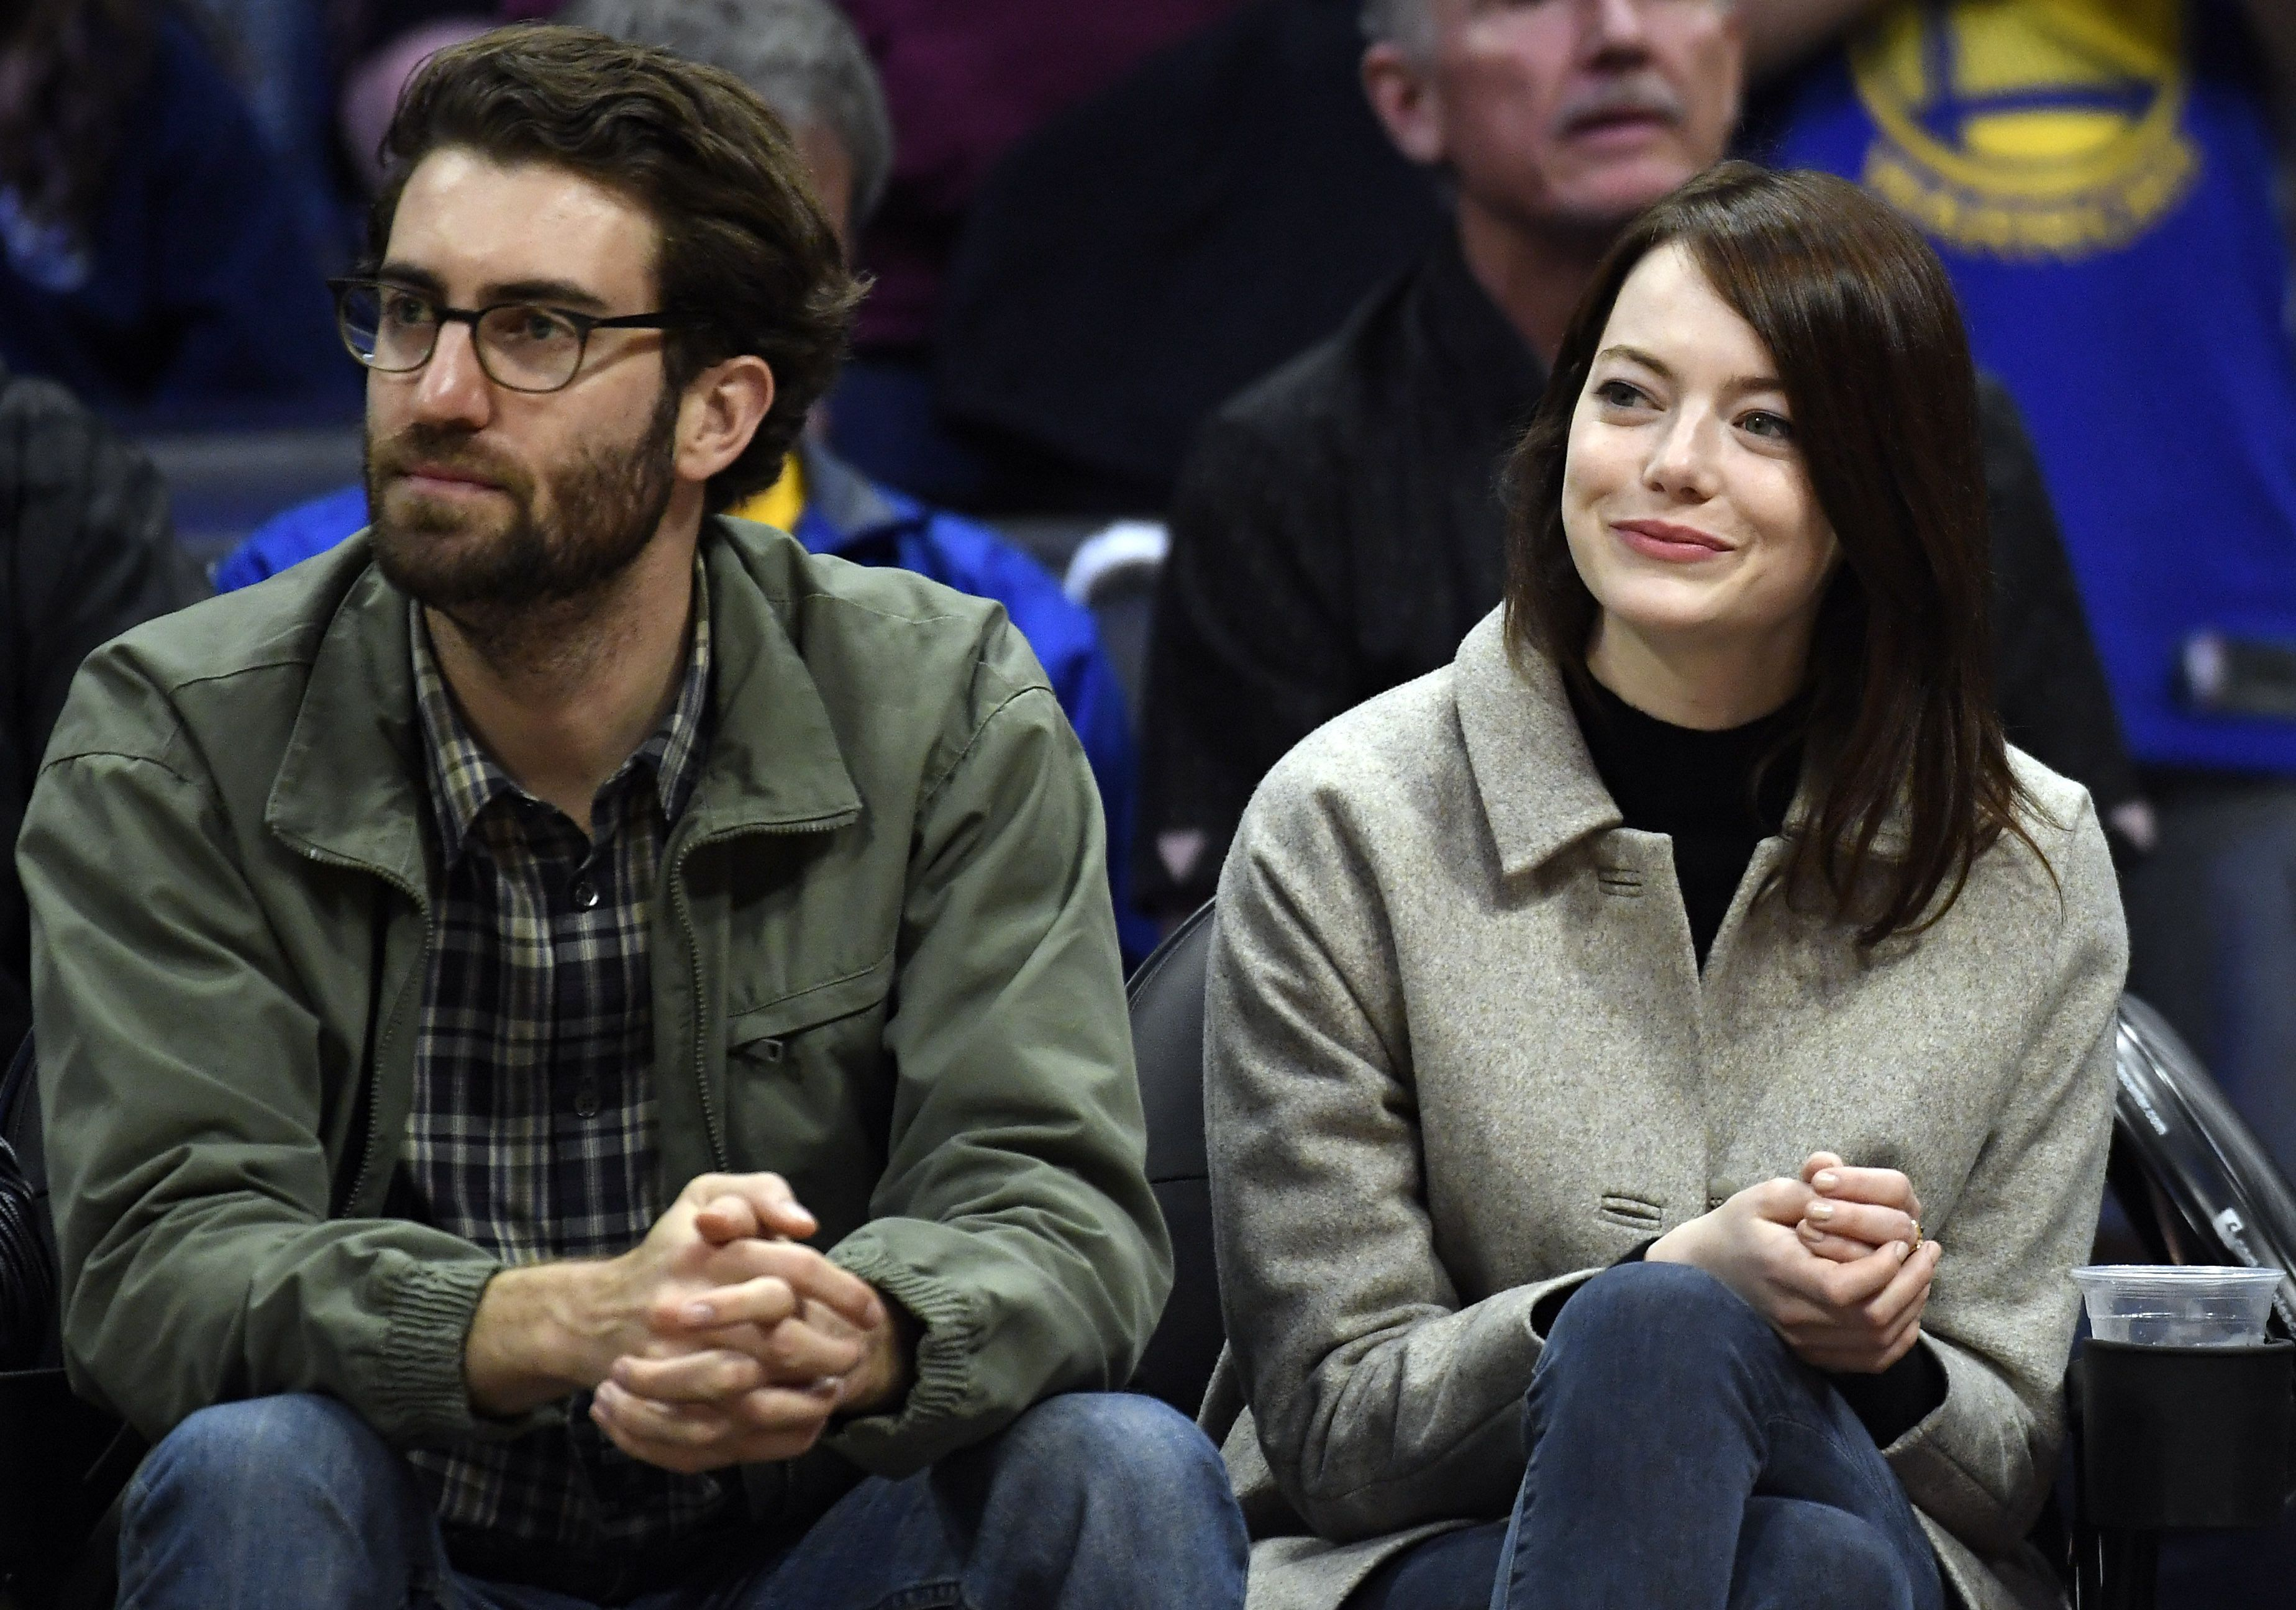 Emma Stone's gorgeous engagement ring has a pearl instead of a diamond in the centre